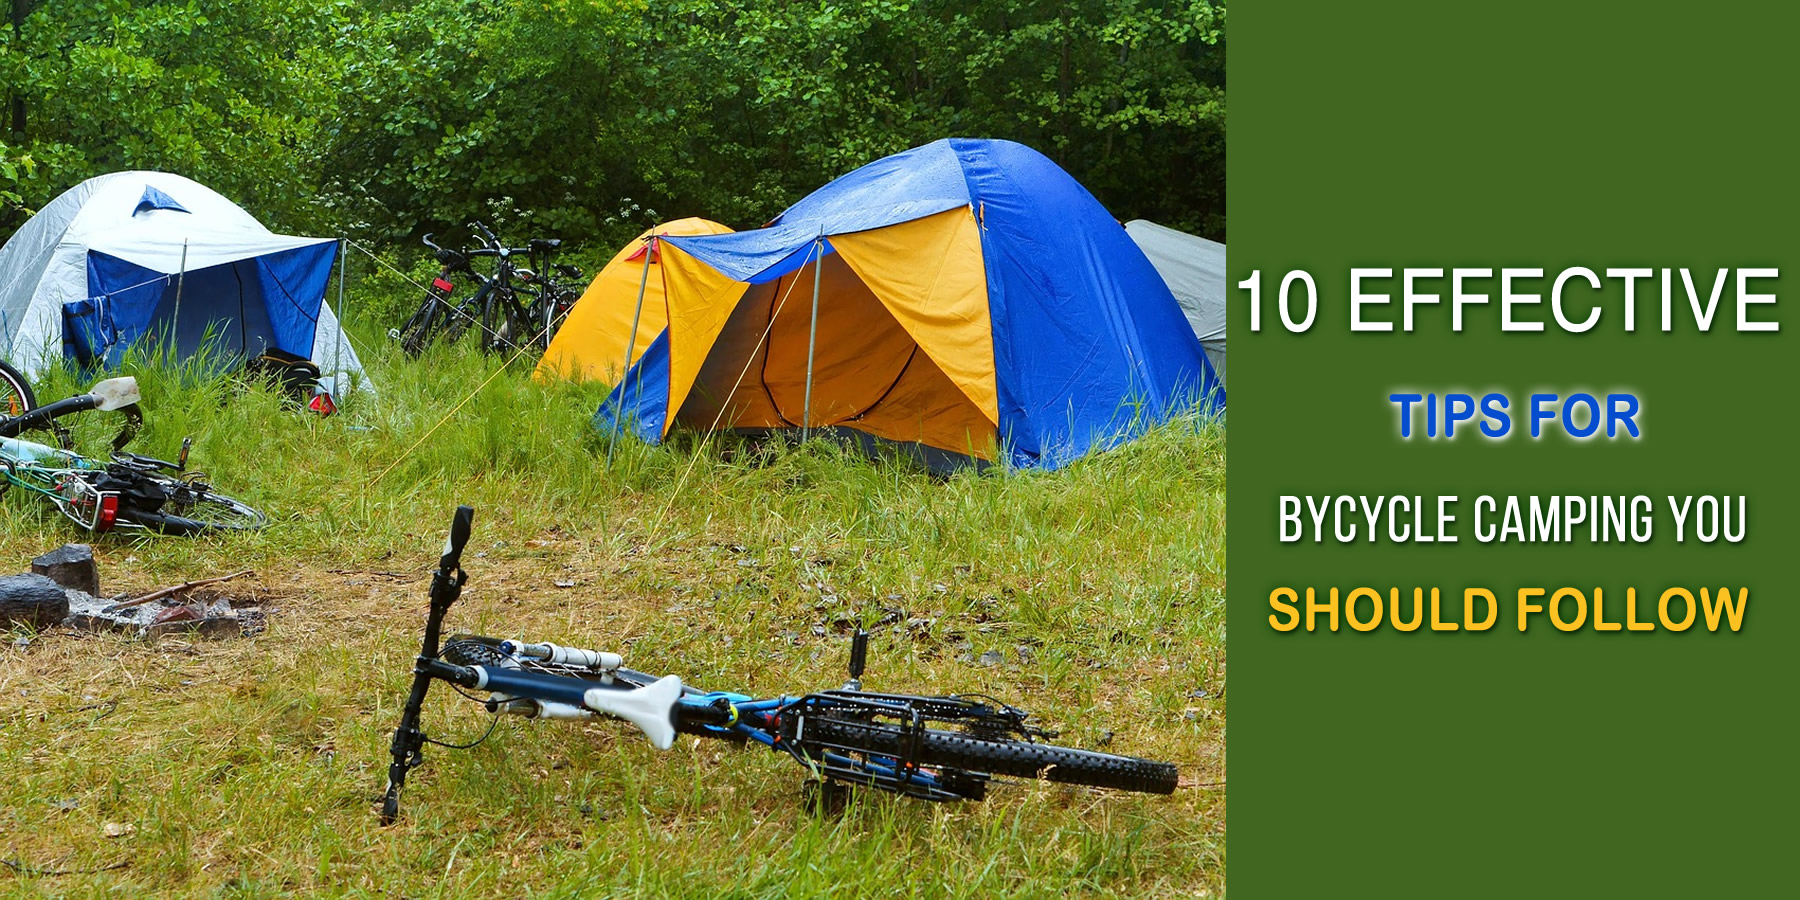 10 Effective Tips For Bicycle Camping You Should Follow